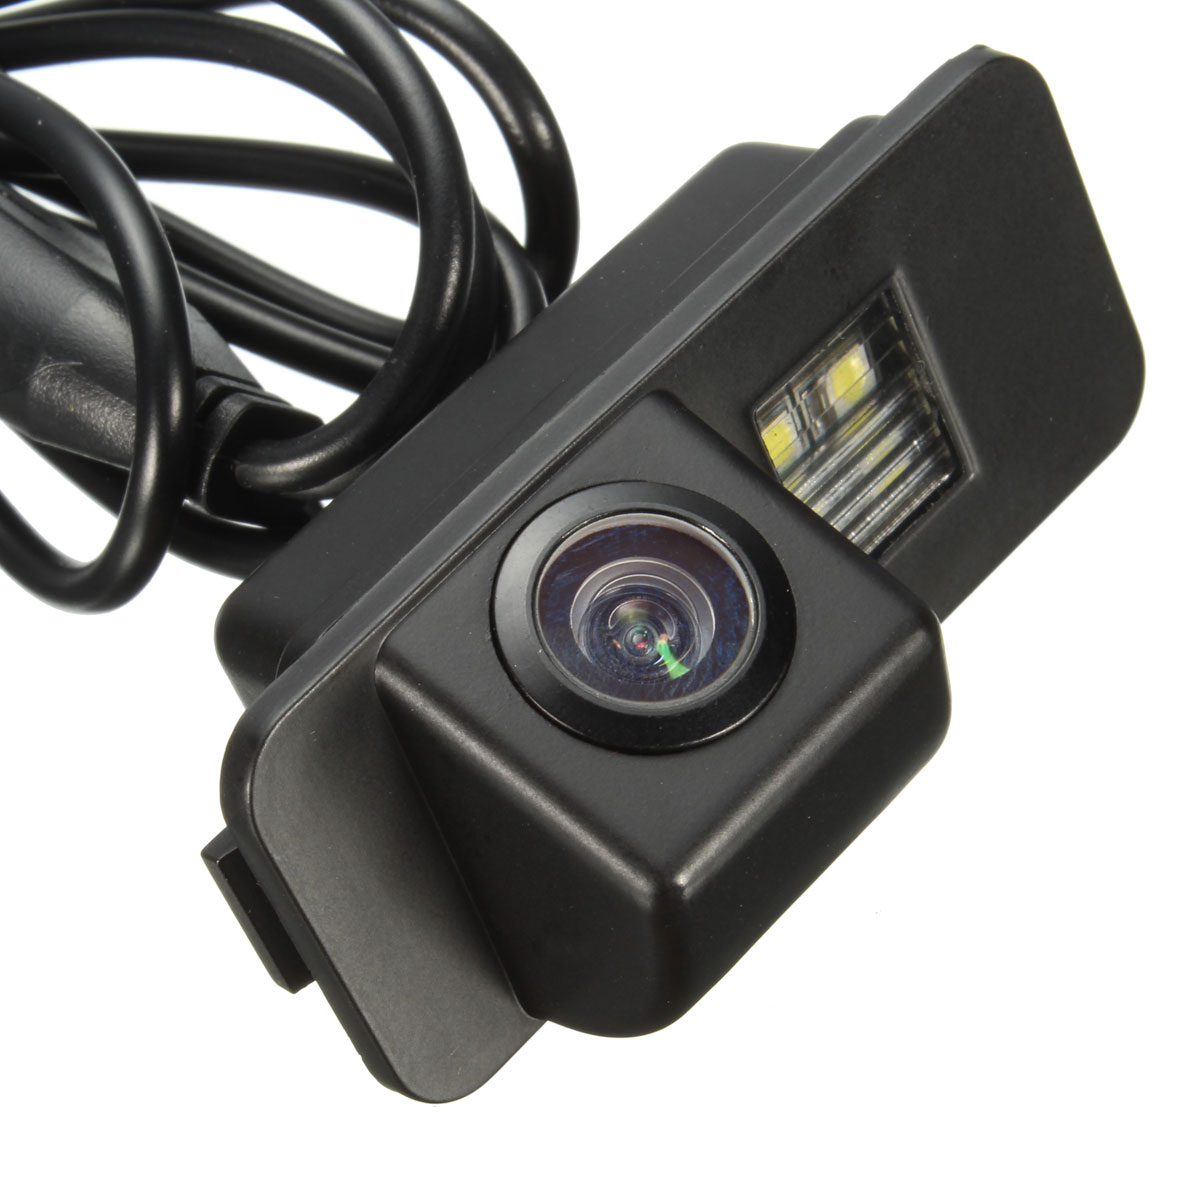 Direct Fit Rearview Reversing Rca Reverse Camera For Ford